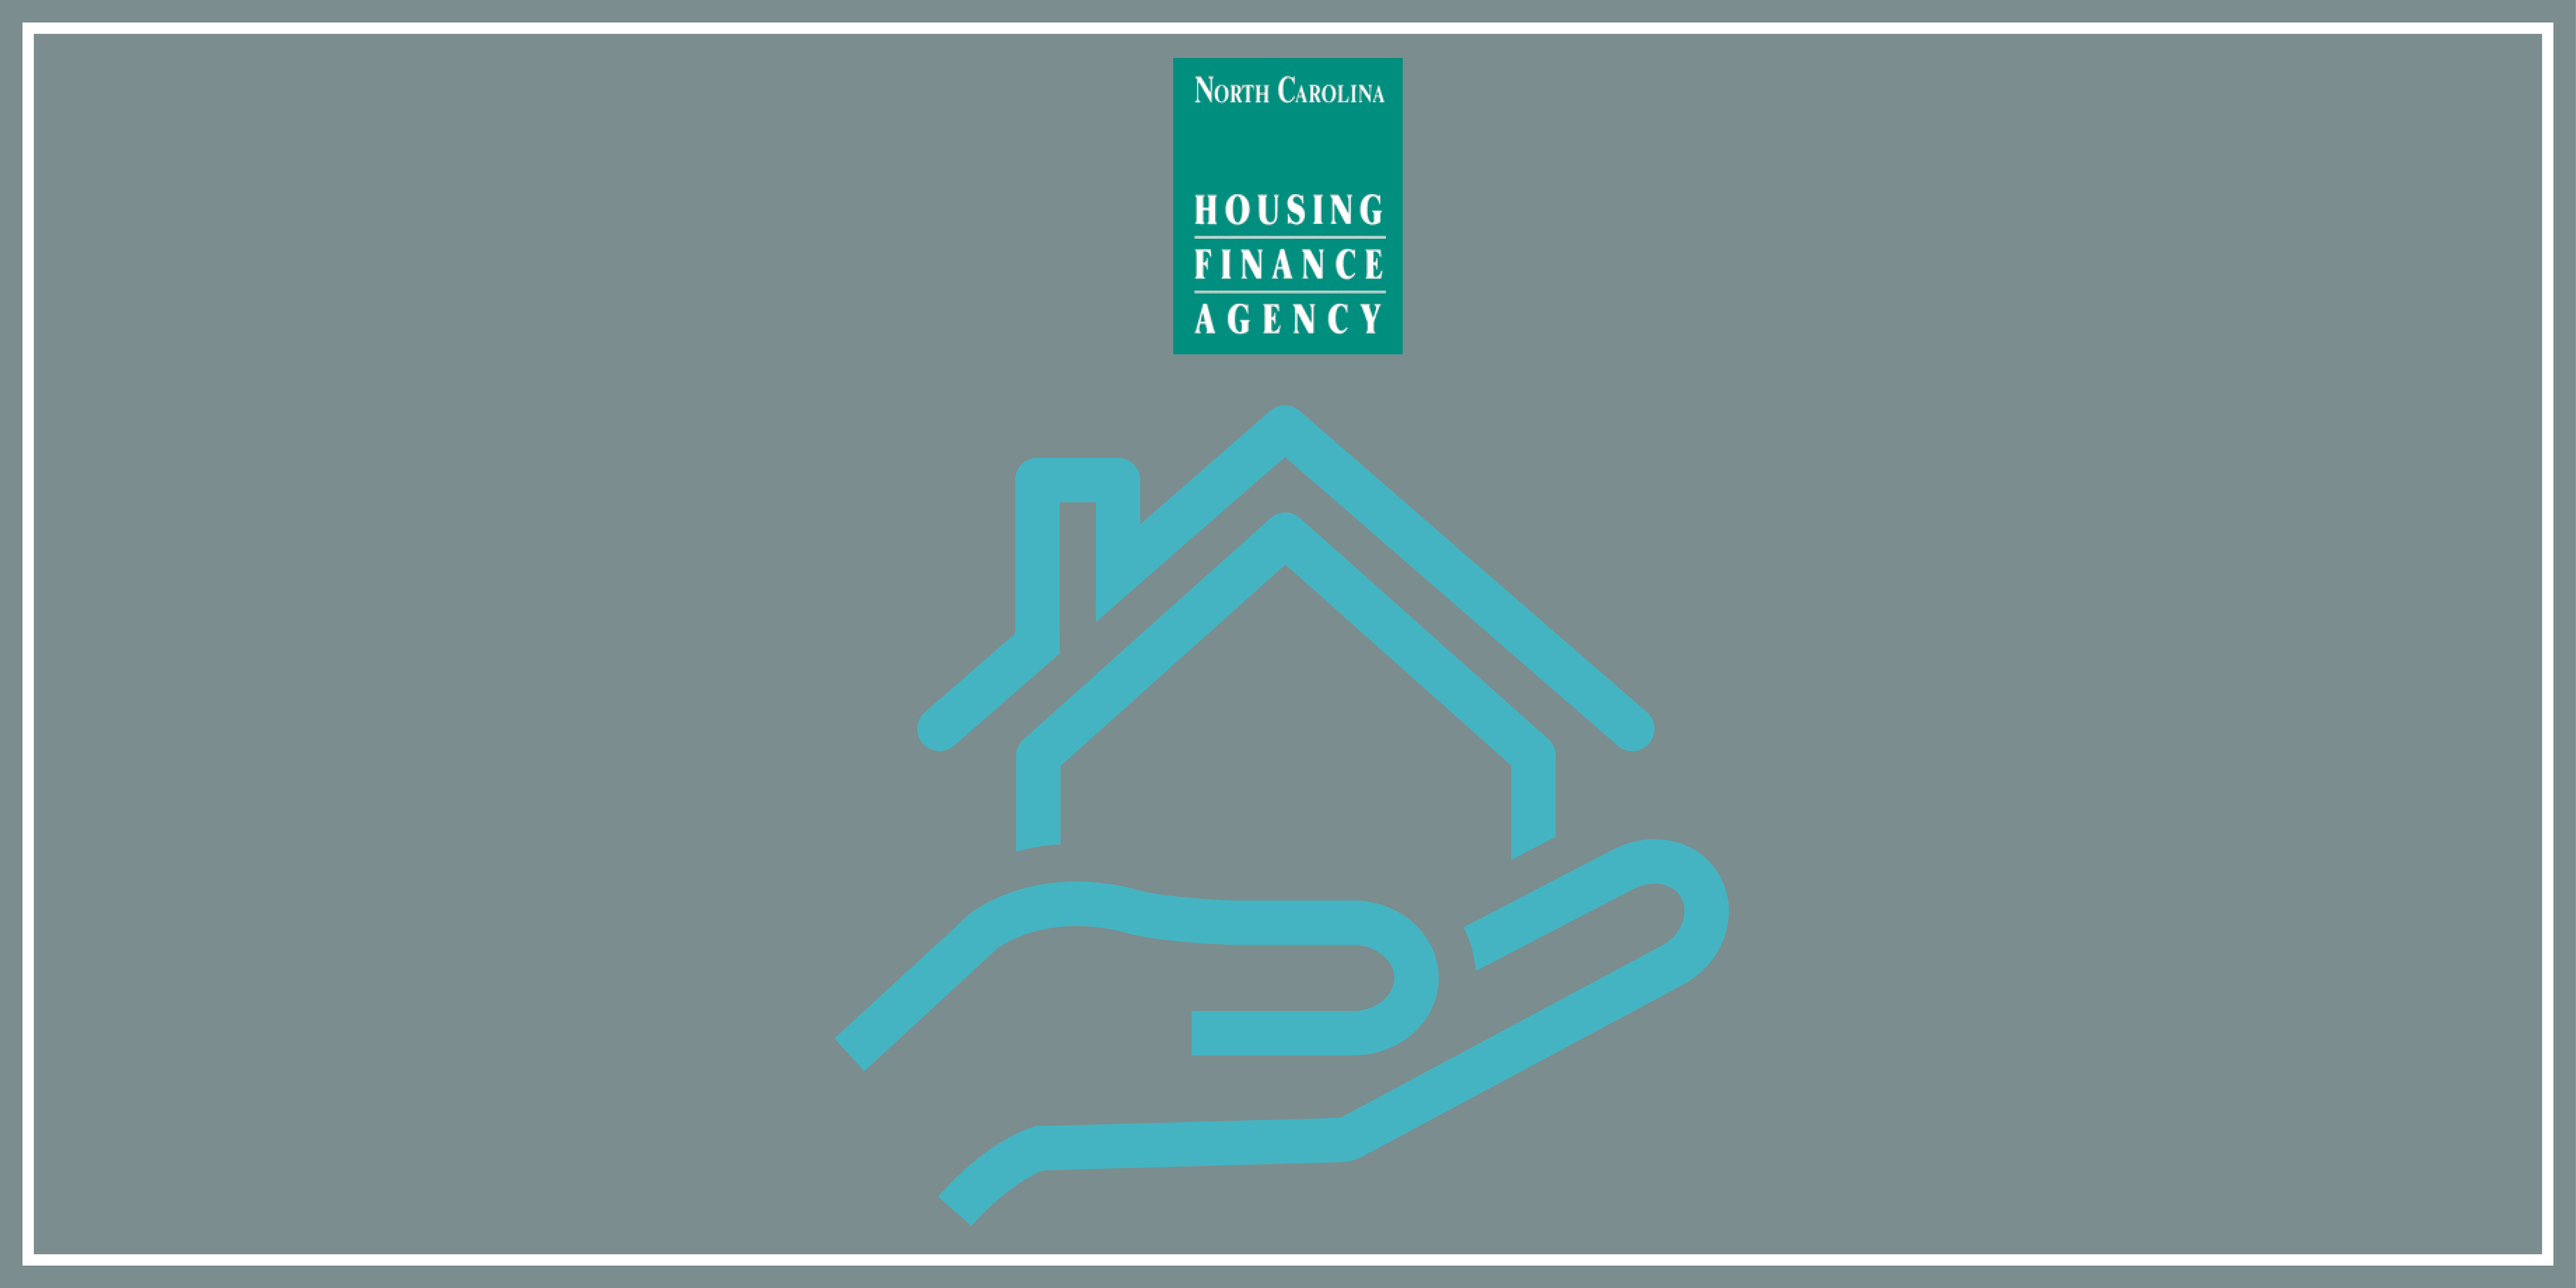 Blue hand holding blue house graphic with Agency logo above